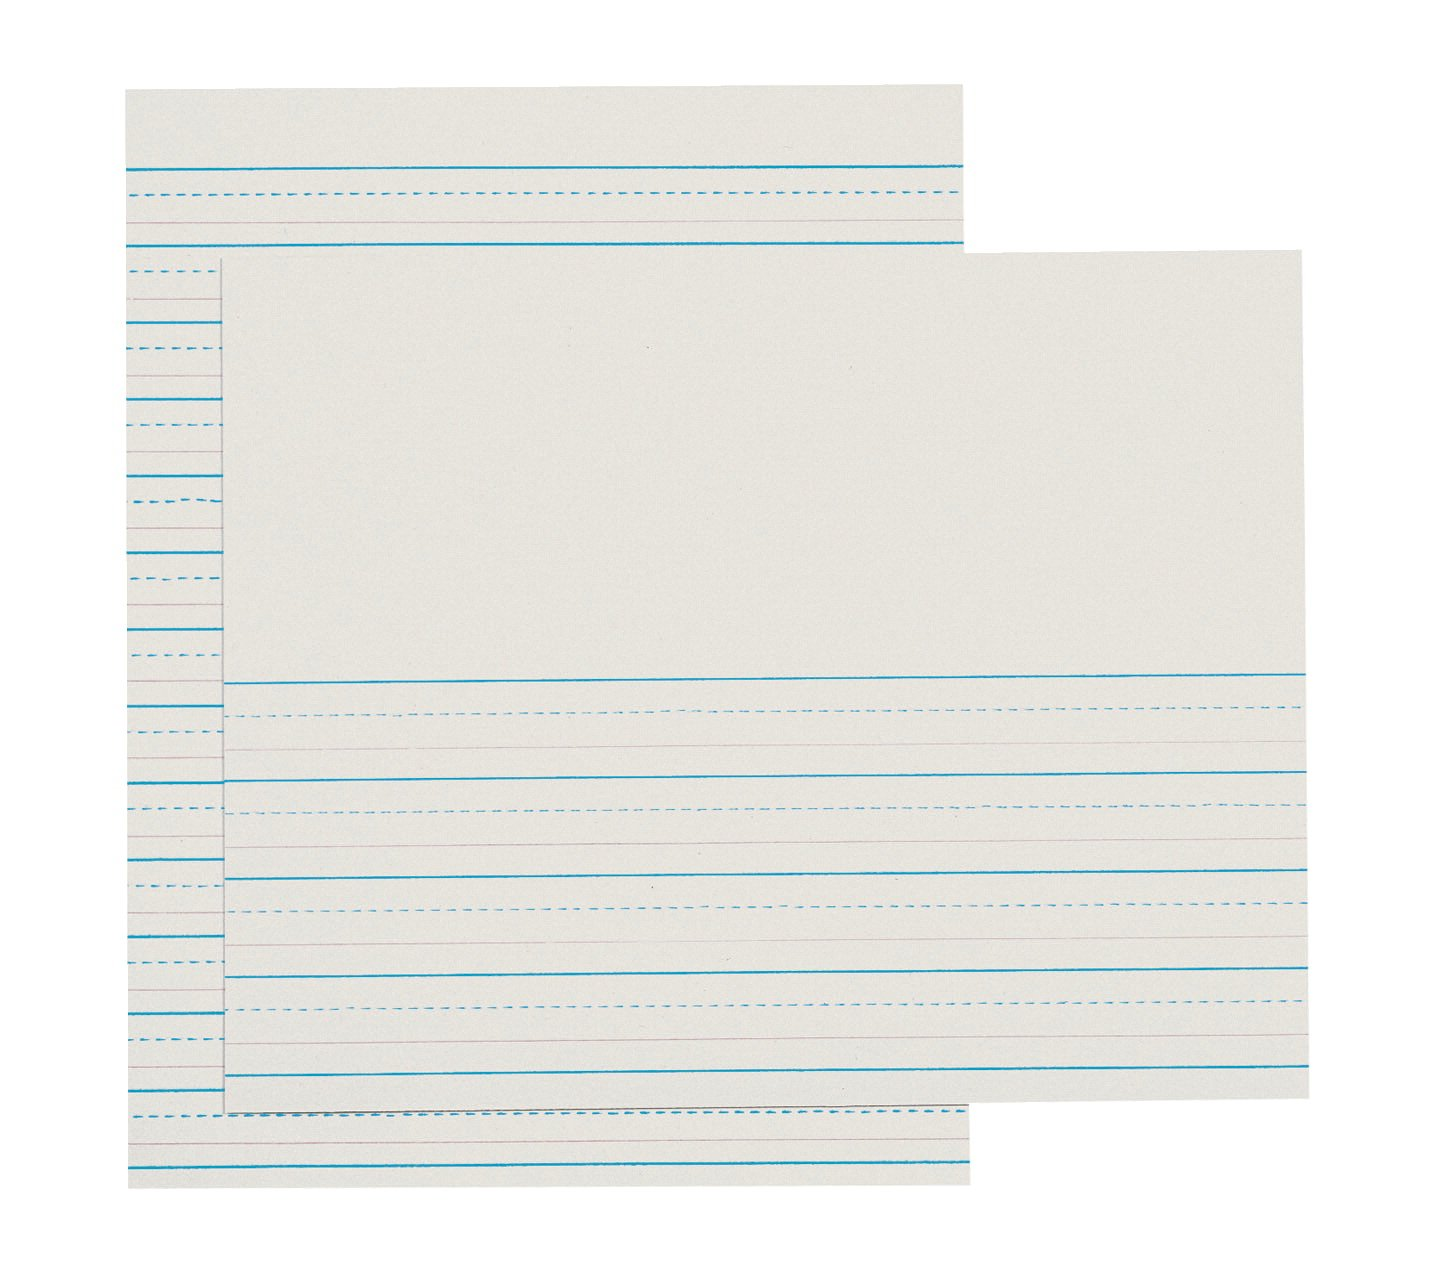 School Smart 85319 Red and Blue Ruled Newsprint for Grade 3-10 1/2 x 8 inches - Ream of 500 - White